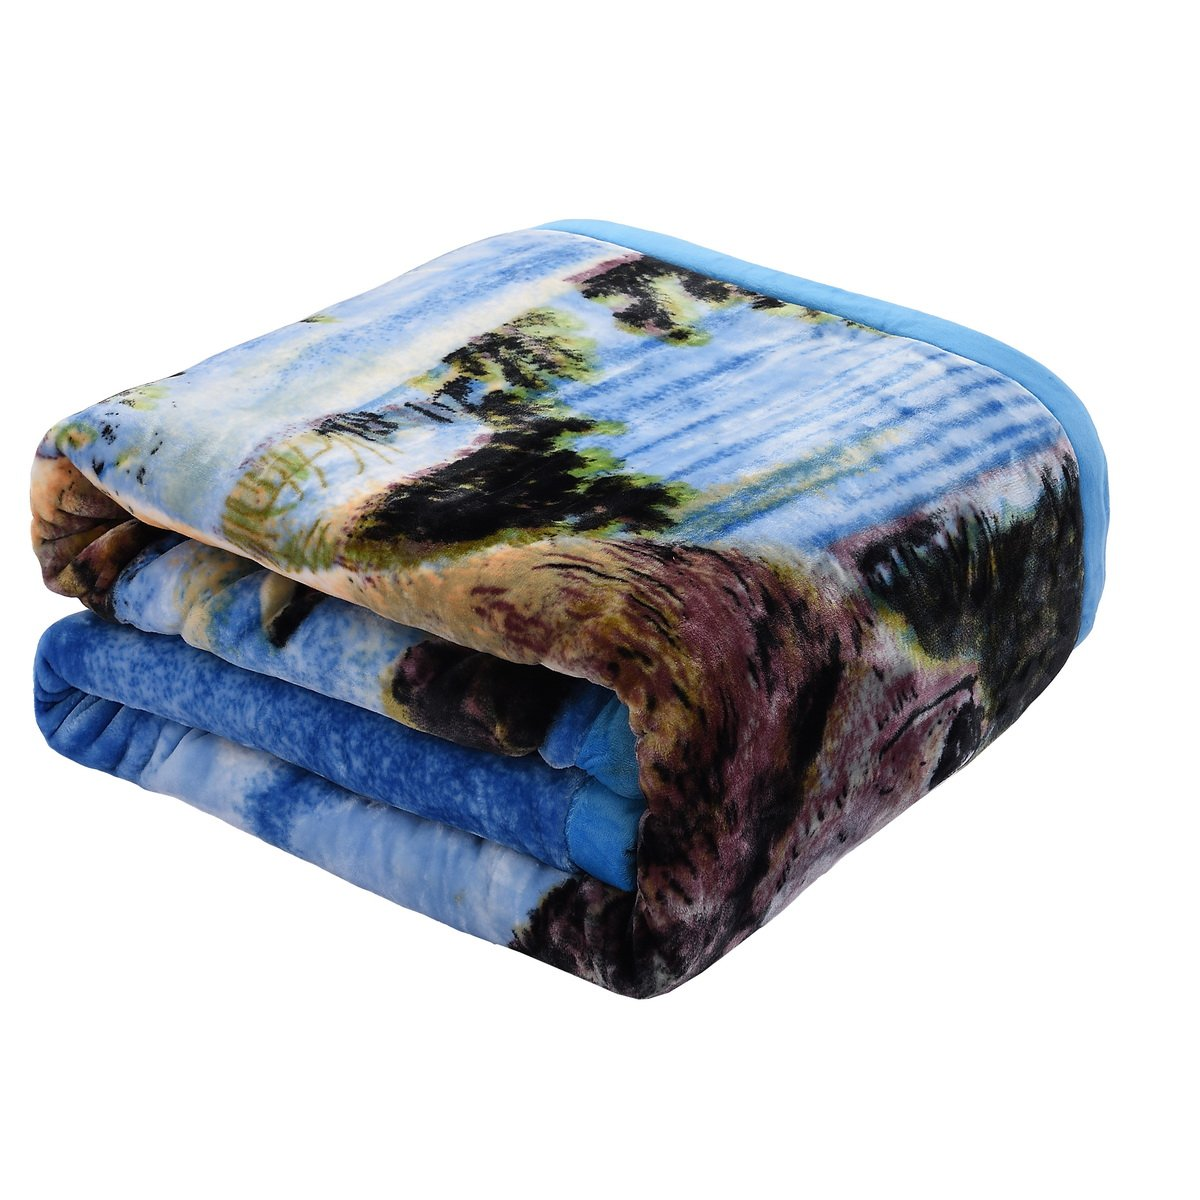 Jml Plush Crystal Velvet Heavy Blanket - Made of 750 GSM Microfiber in 95''x85'' - Faux, Mink and Embossing Dual Layers - Animal Printed in King Size, 9LB Weight by Jml (Image #8)